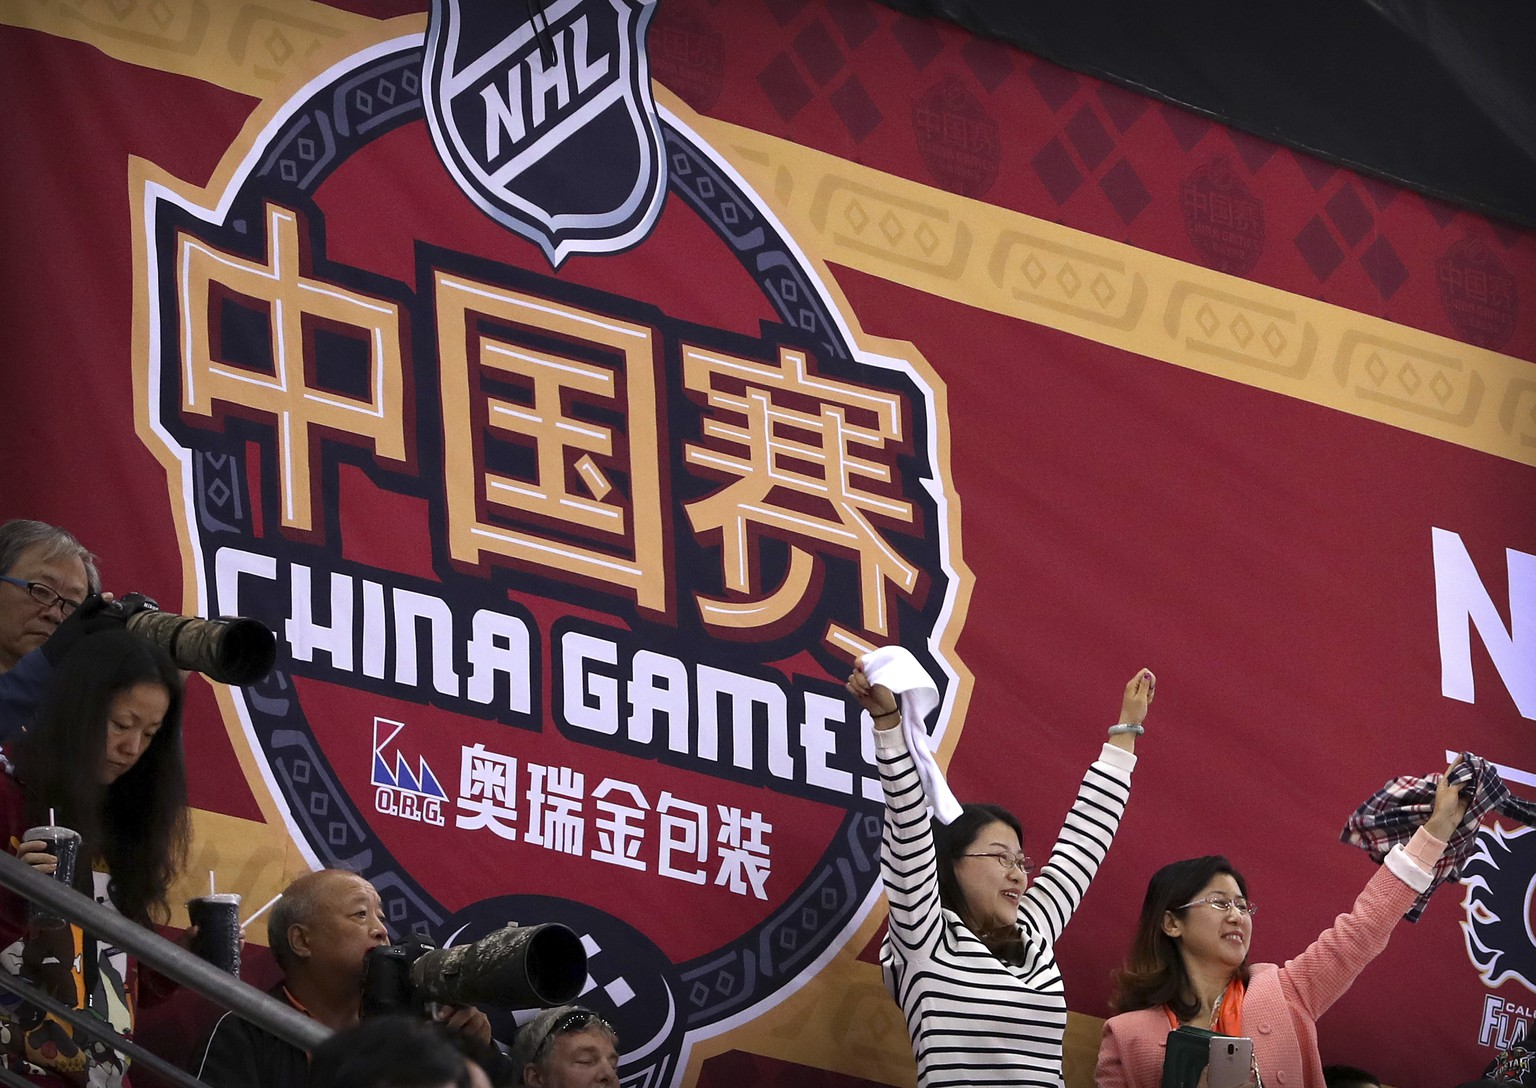 Chinese fans cheer for a Calgary Flames goal during the 2018 NHL China Games hockey game between the Boston Bruins and the Calgary Flames in Beijing, China, Wednesday, Sept. 19, 2018. Boston beat Calgary, 3-1. (AP Photo/Mark Schiefelbein)